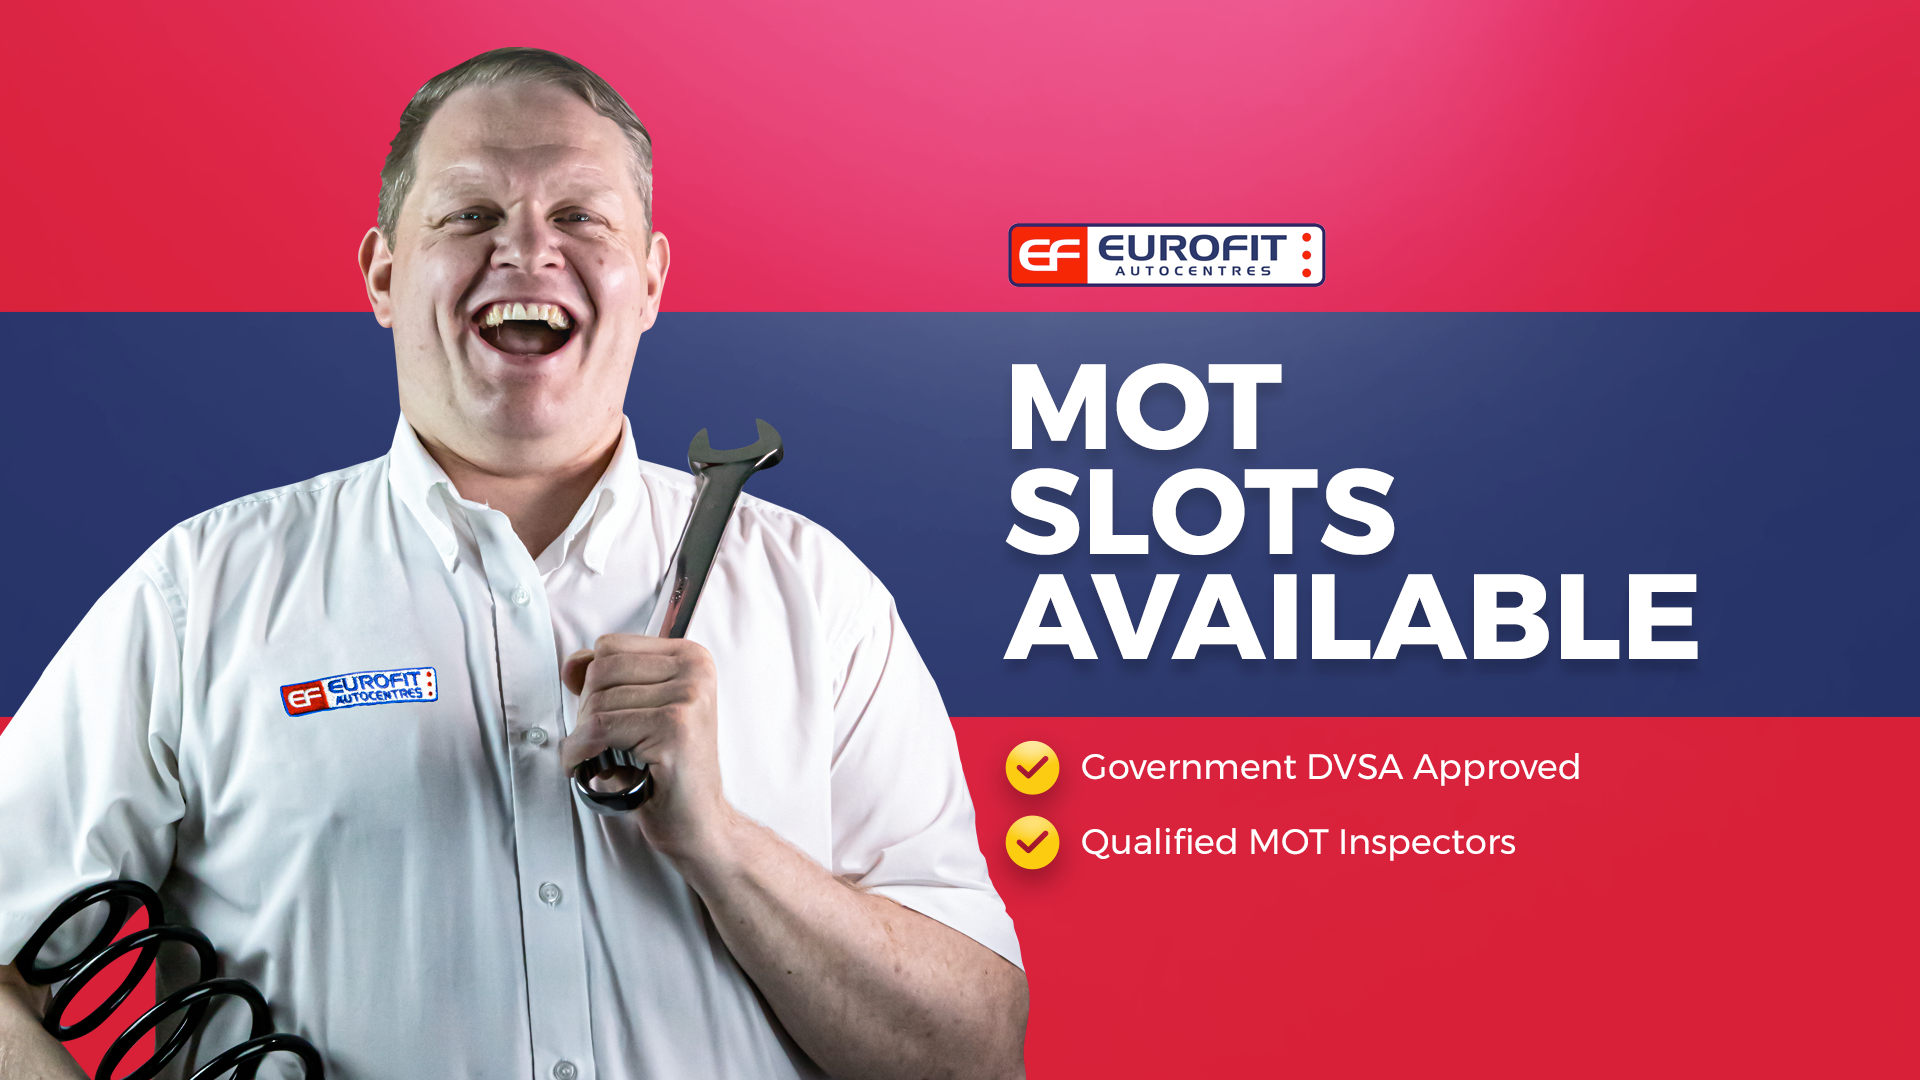 MOT slots available, eurofit autocentres, government approved DVSA, qualified MOT inspectors